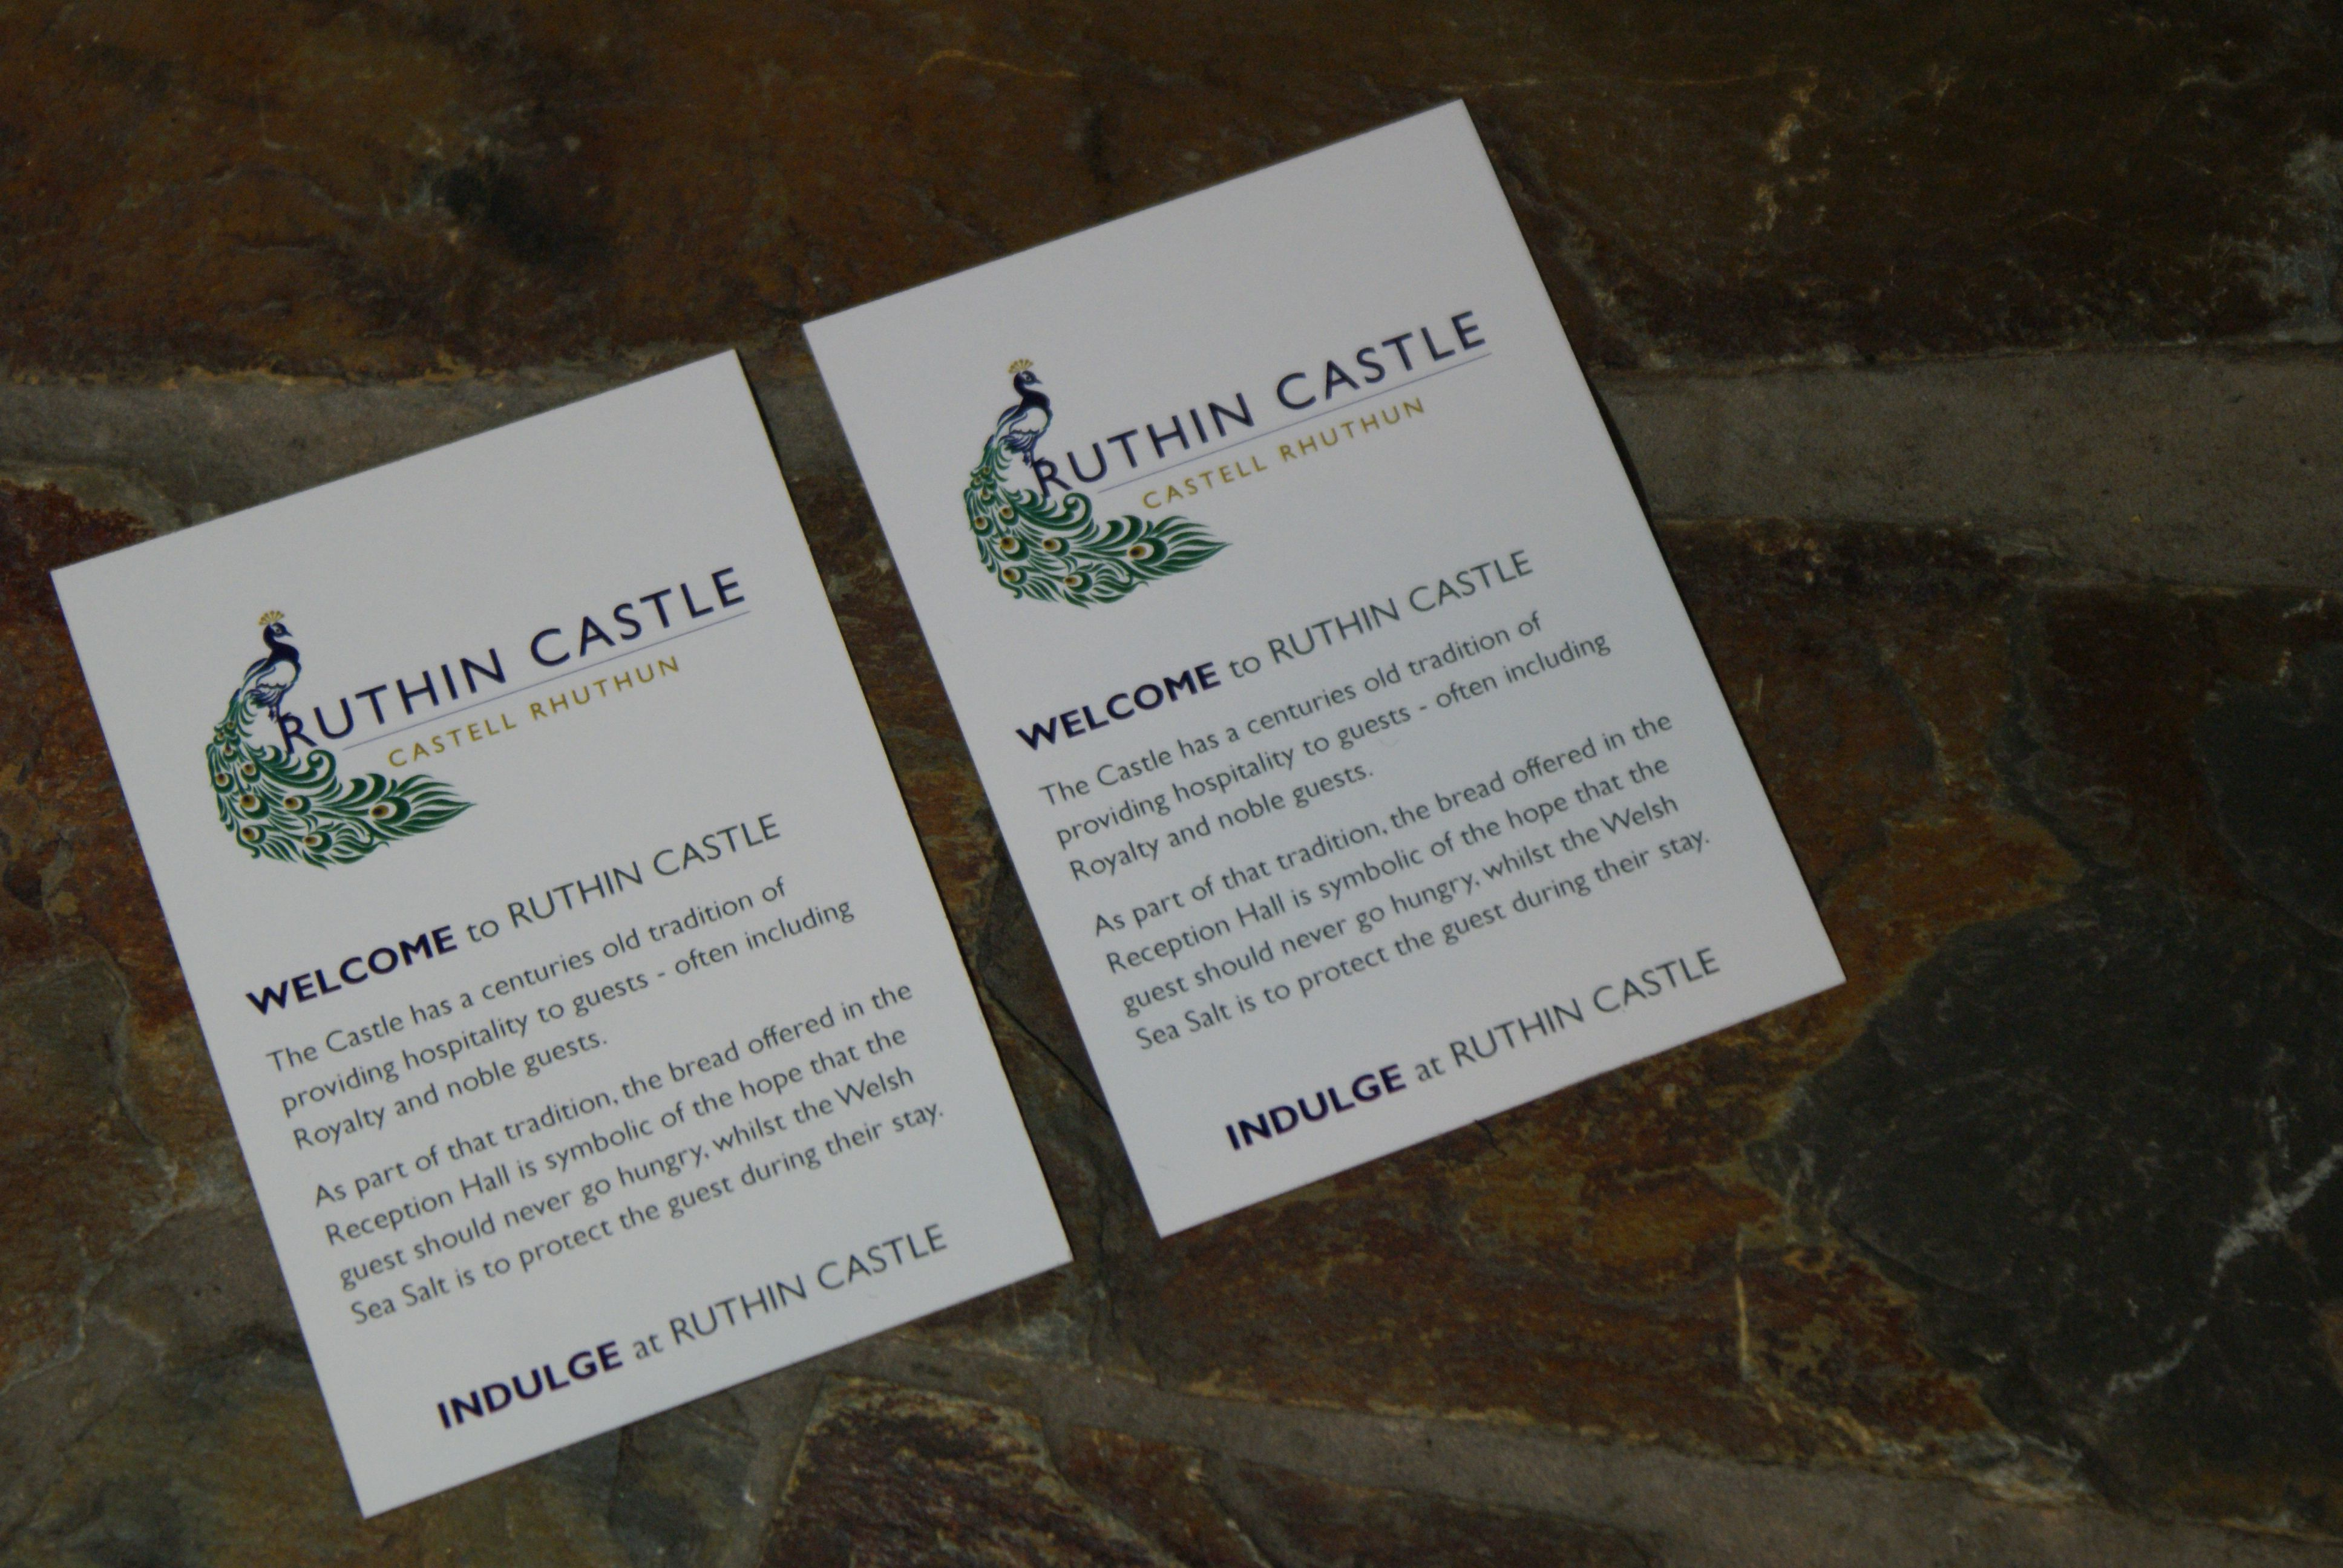 A 'Welcome' card from The Castle.